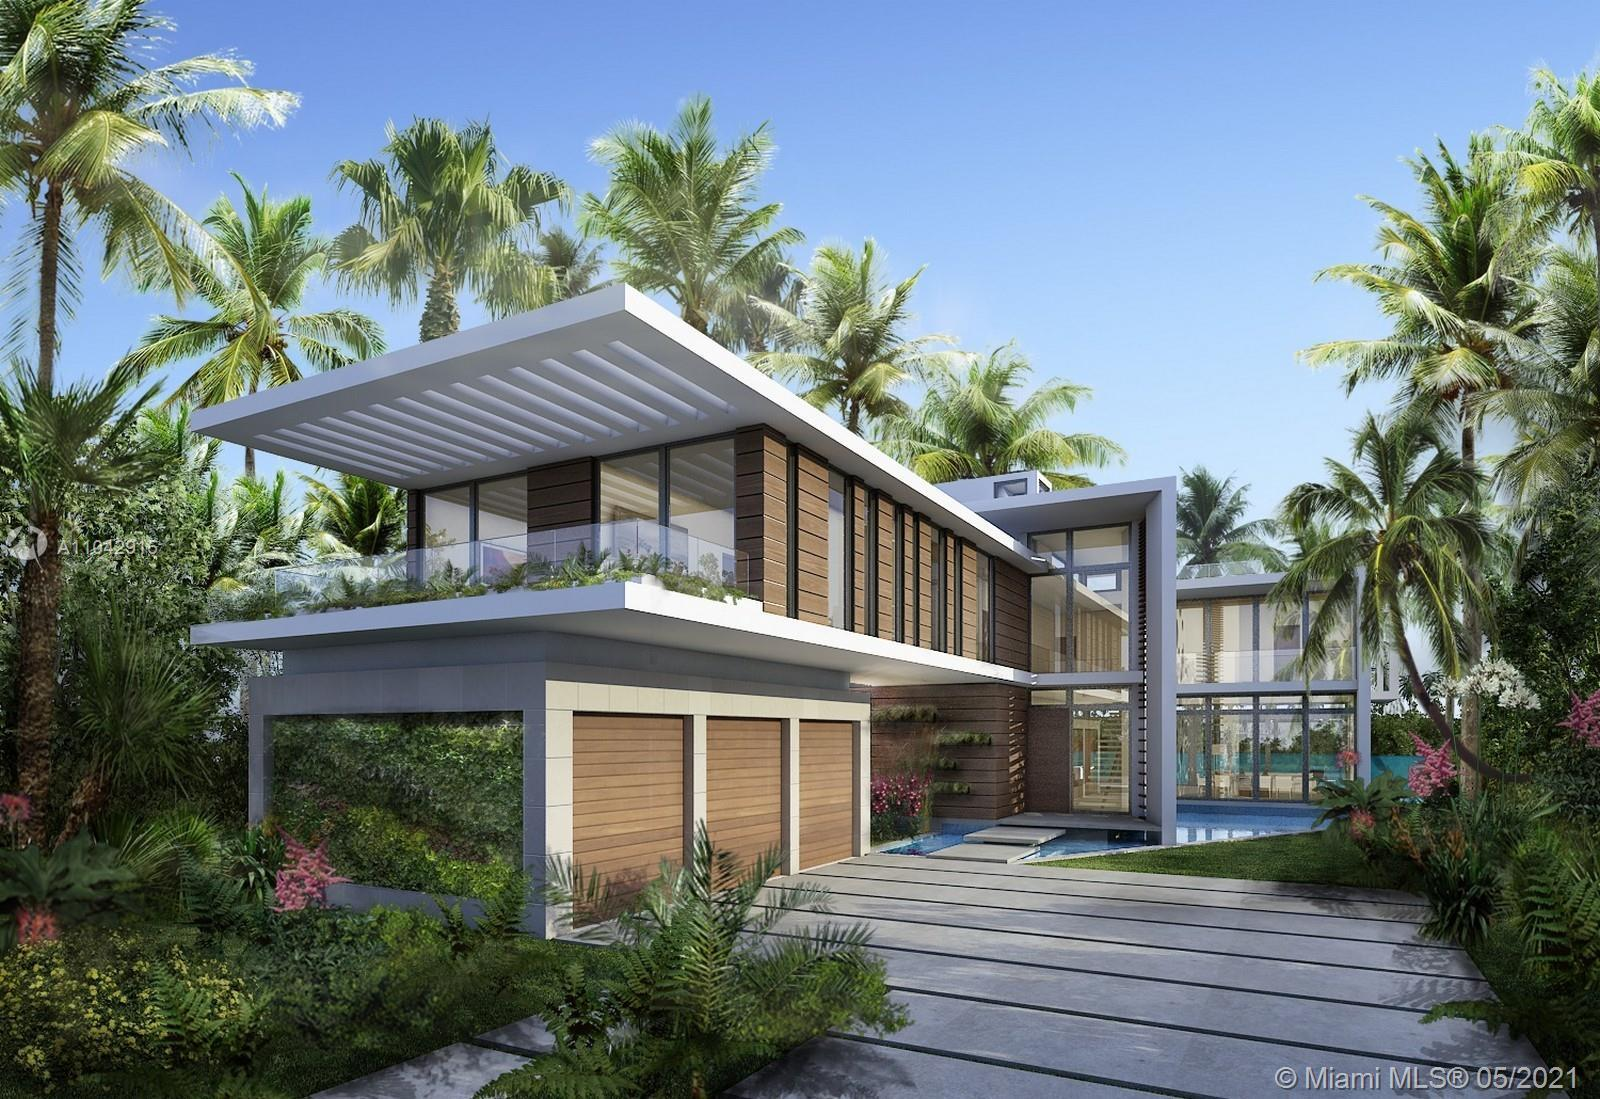 Brand new tropical modern masterpiece designed by Reinaldo Borges Architecture currently under const